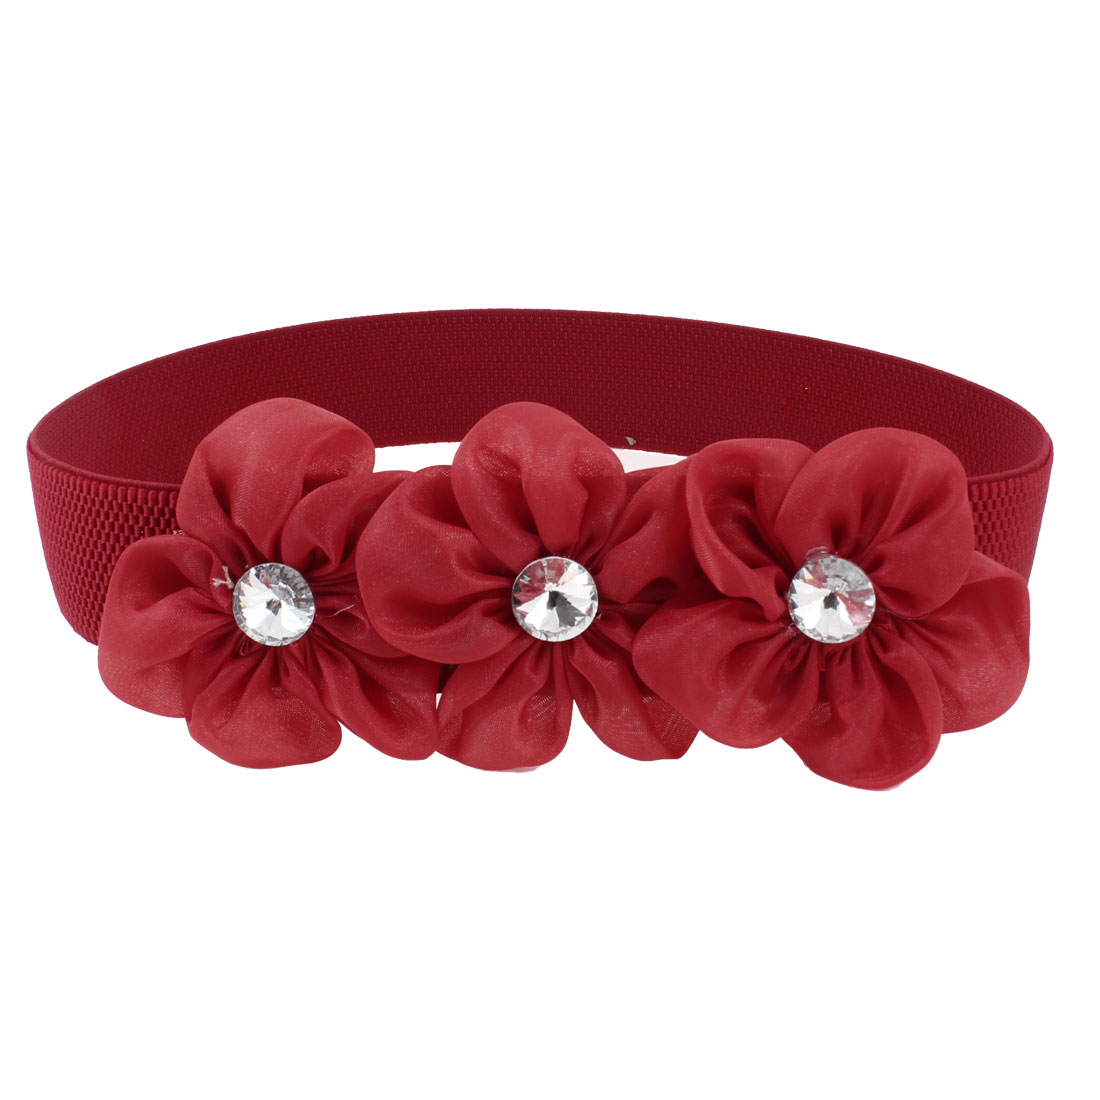 Lady Faceted Crystal Inlaid Red Organza Flower Decor Elastic Waist Band Belt